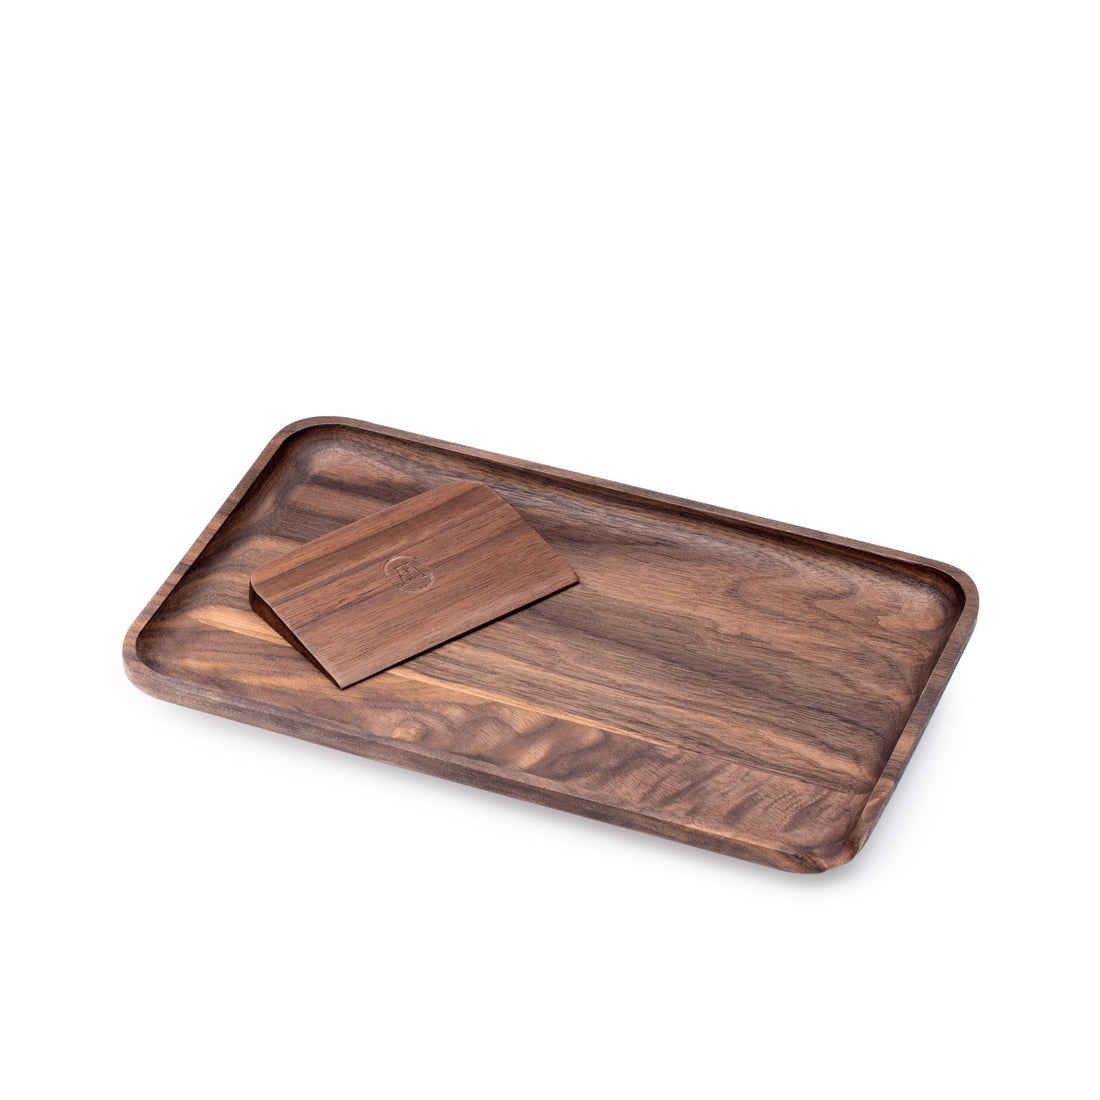 Marley Natural American Black Walnut Rolling Tray - Small